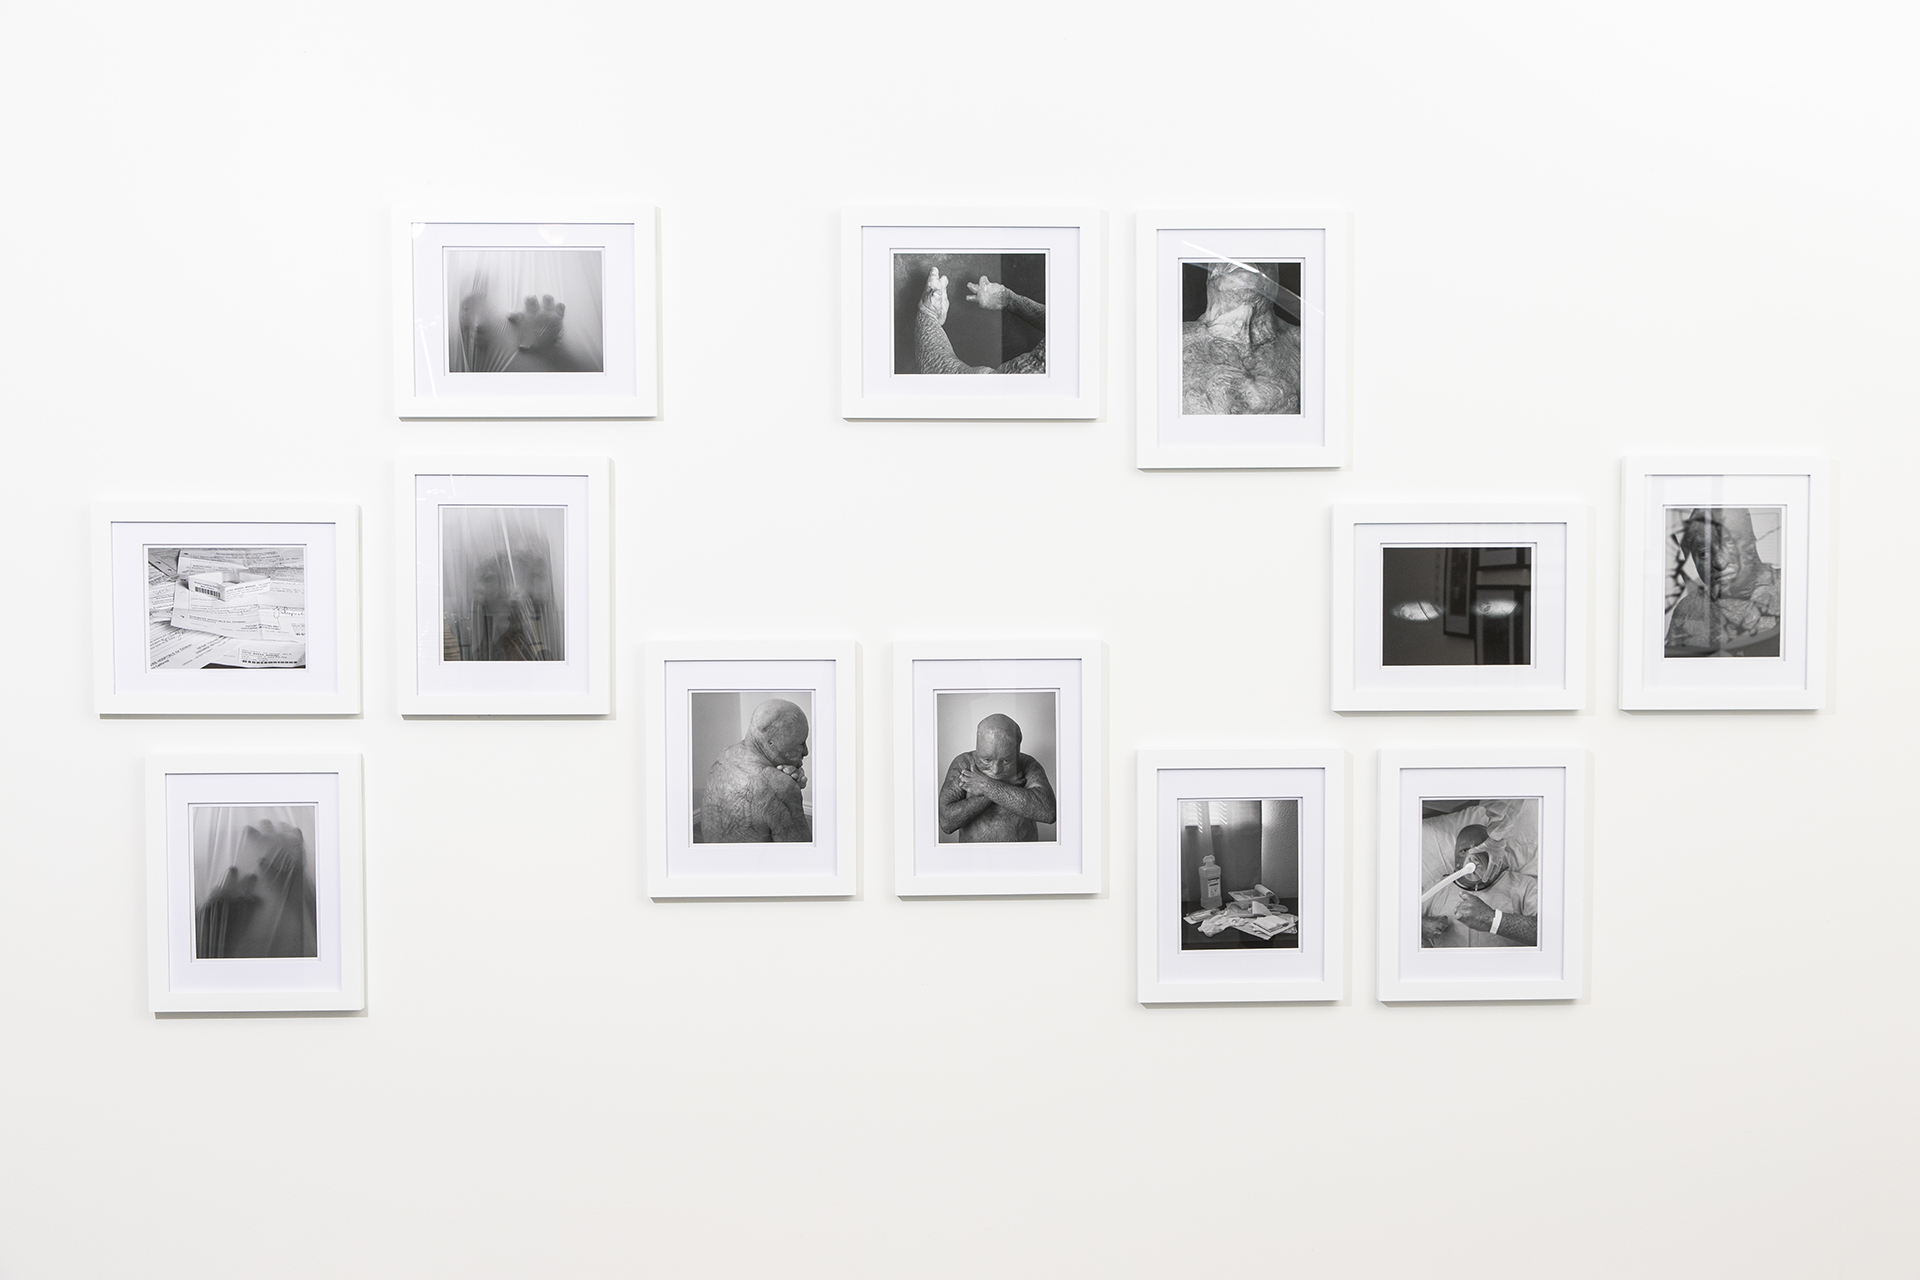 Manuel Ortiz Remembrance x Acceptance digital print installation on gallery wall.